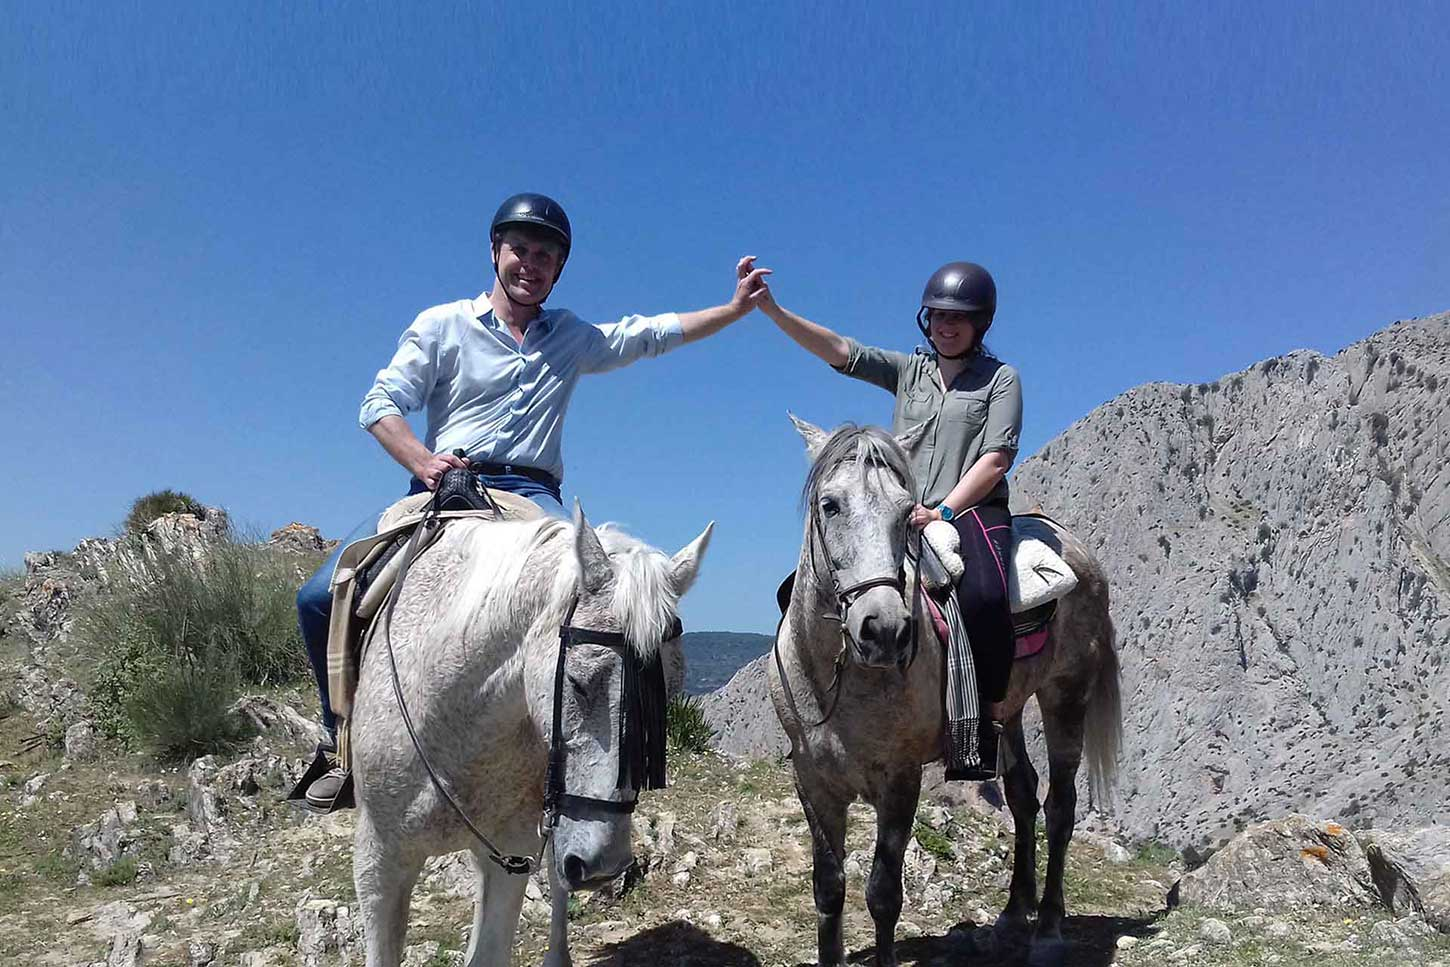 Horse Riding El Chorro spain Horse riding Holiday Tripadvisor review Andalucia Spain Europe